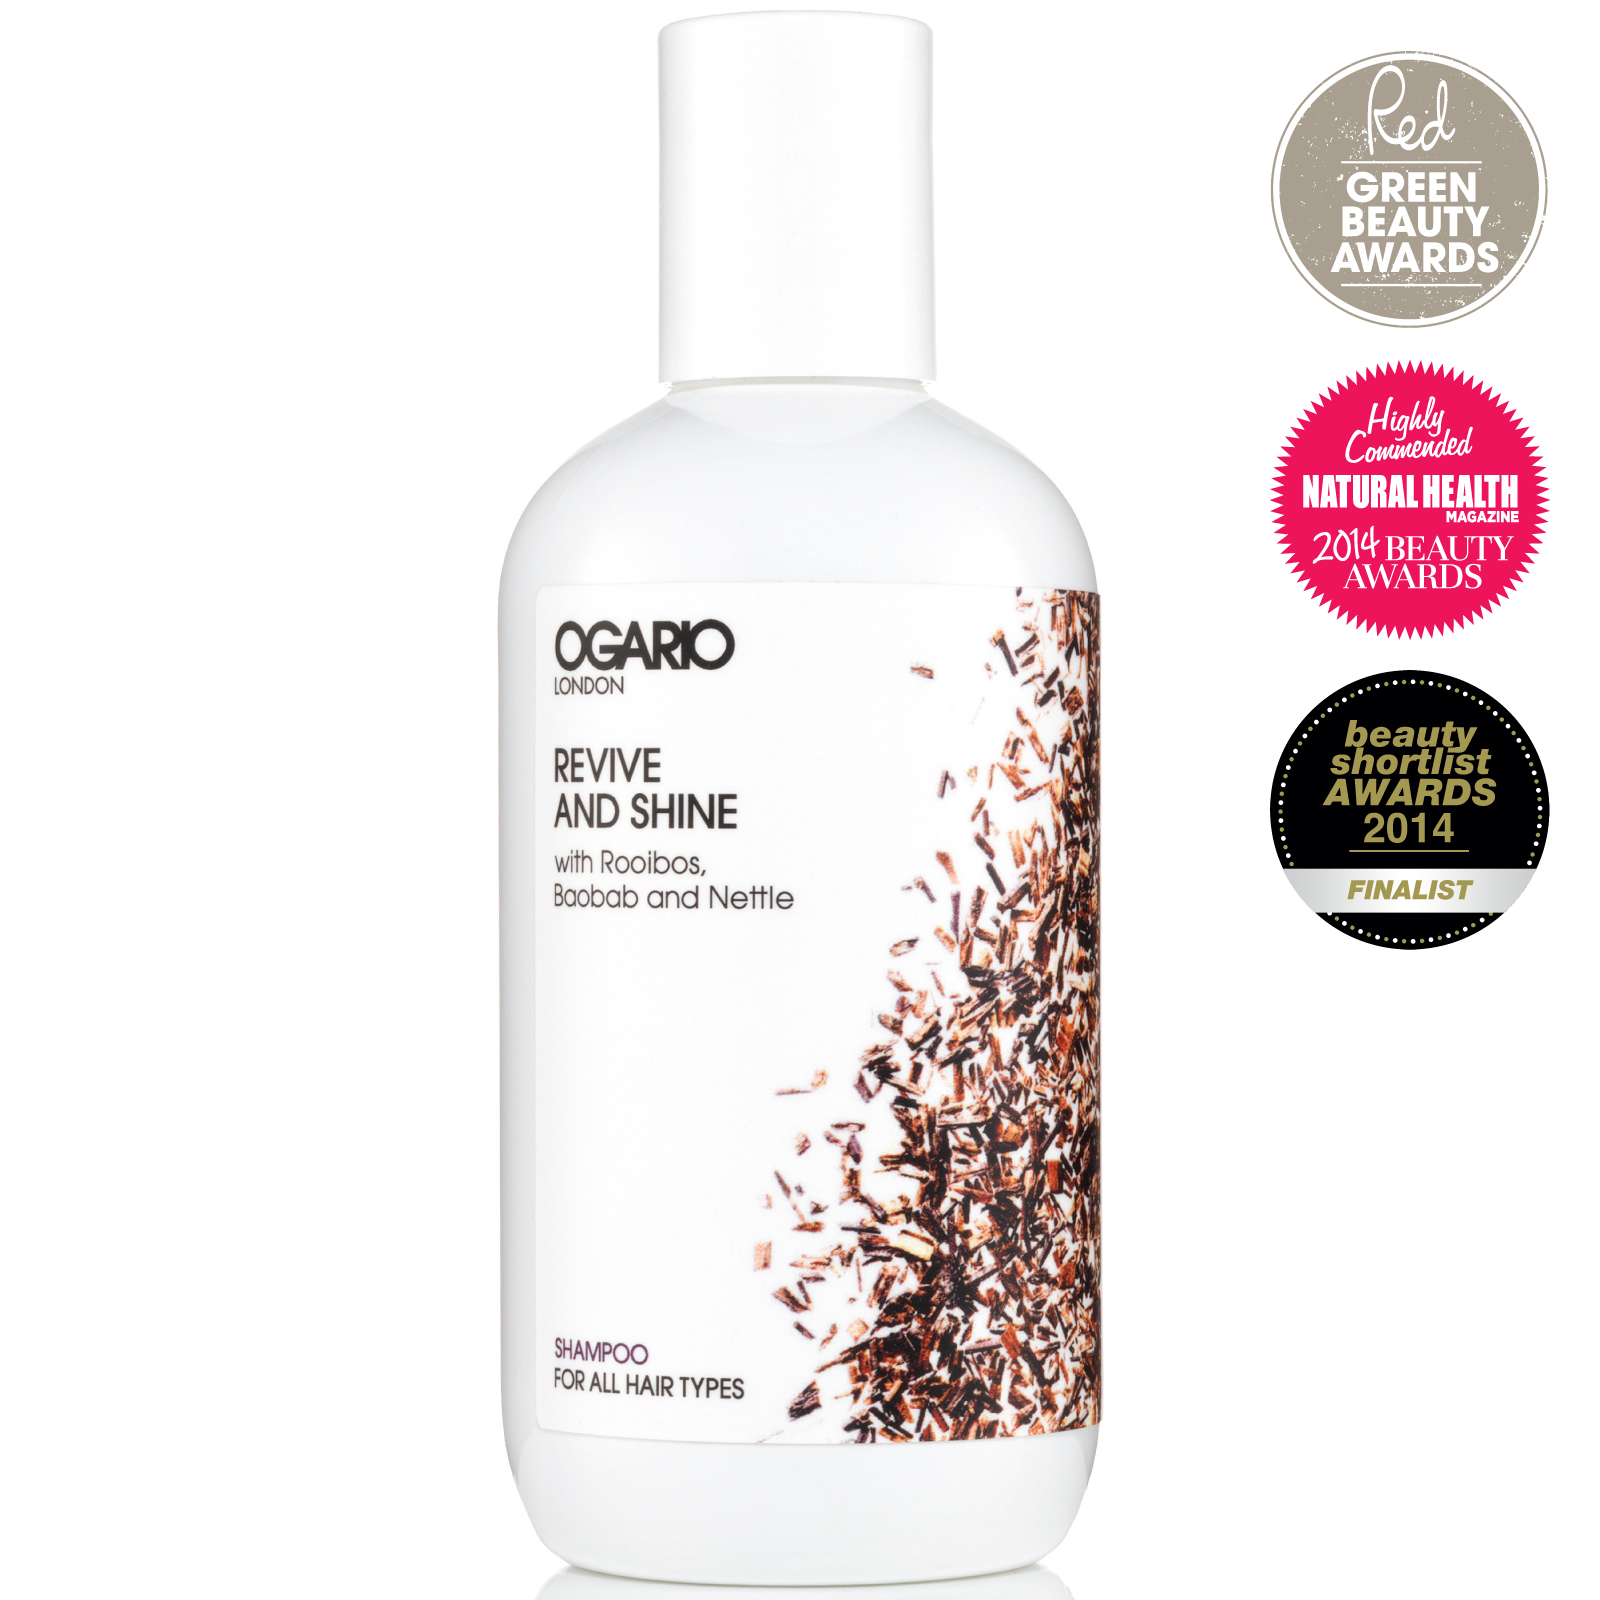 OGARIO Revive and Shine Shampoo; Baobab adds volume to fine hair